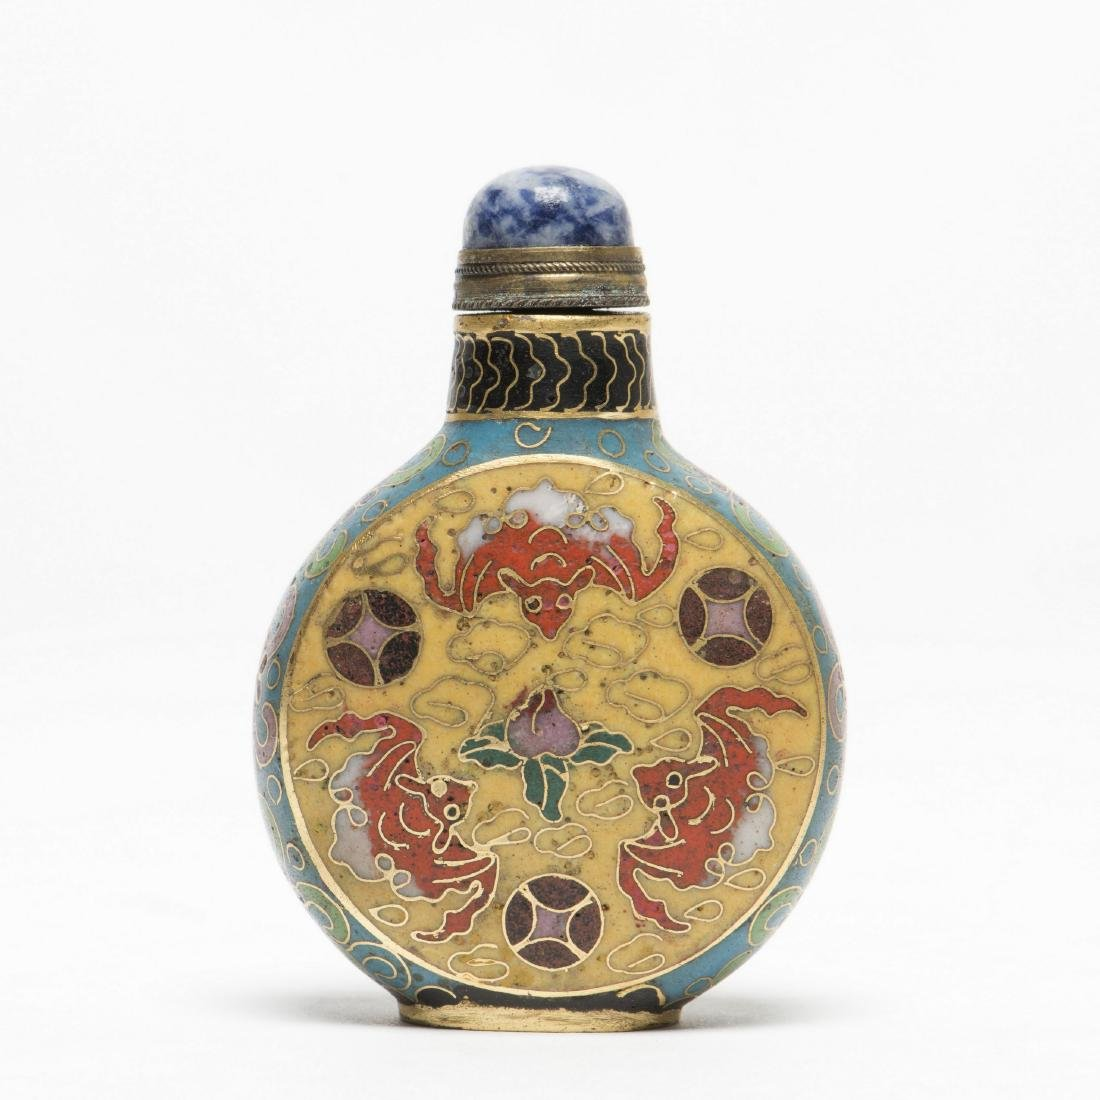 A CLOISONNE BAT SNUFF BOTTLE